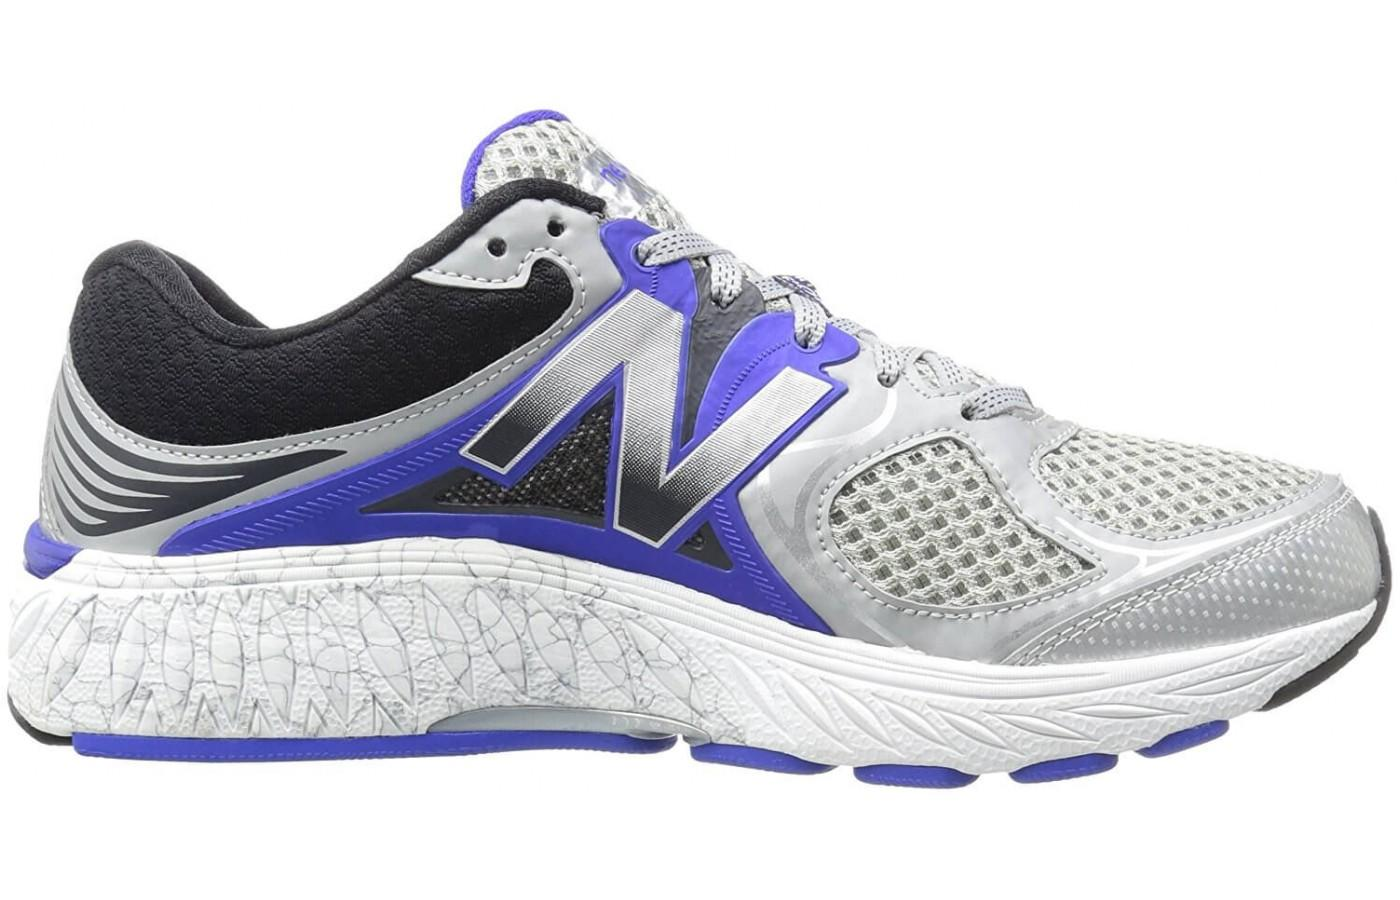 Looking at the New Balance 940V3.